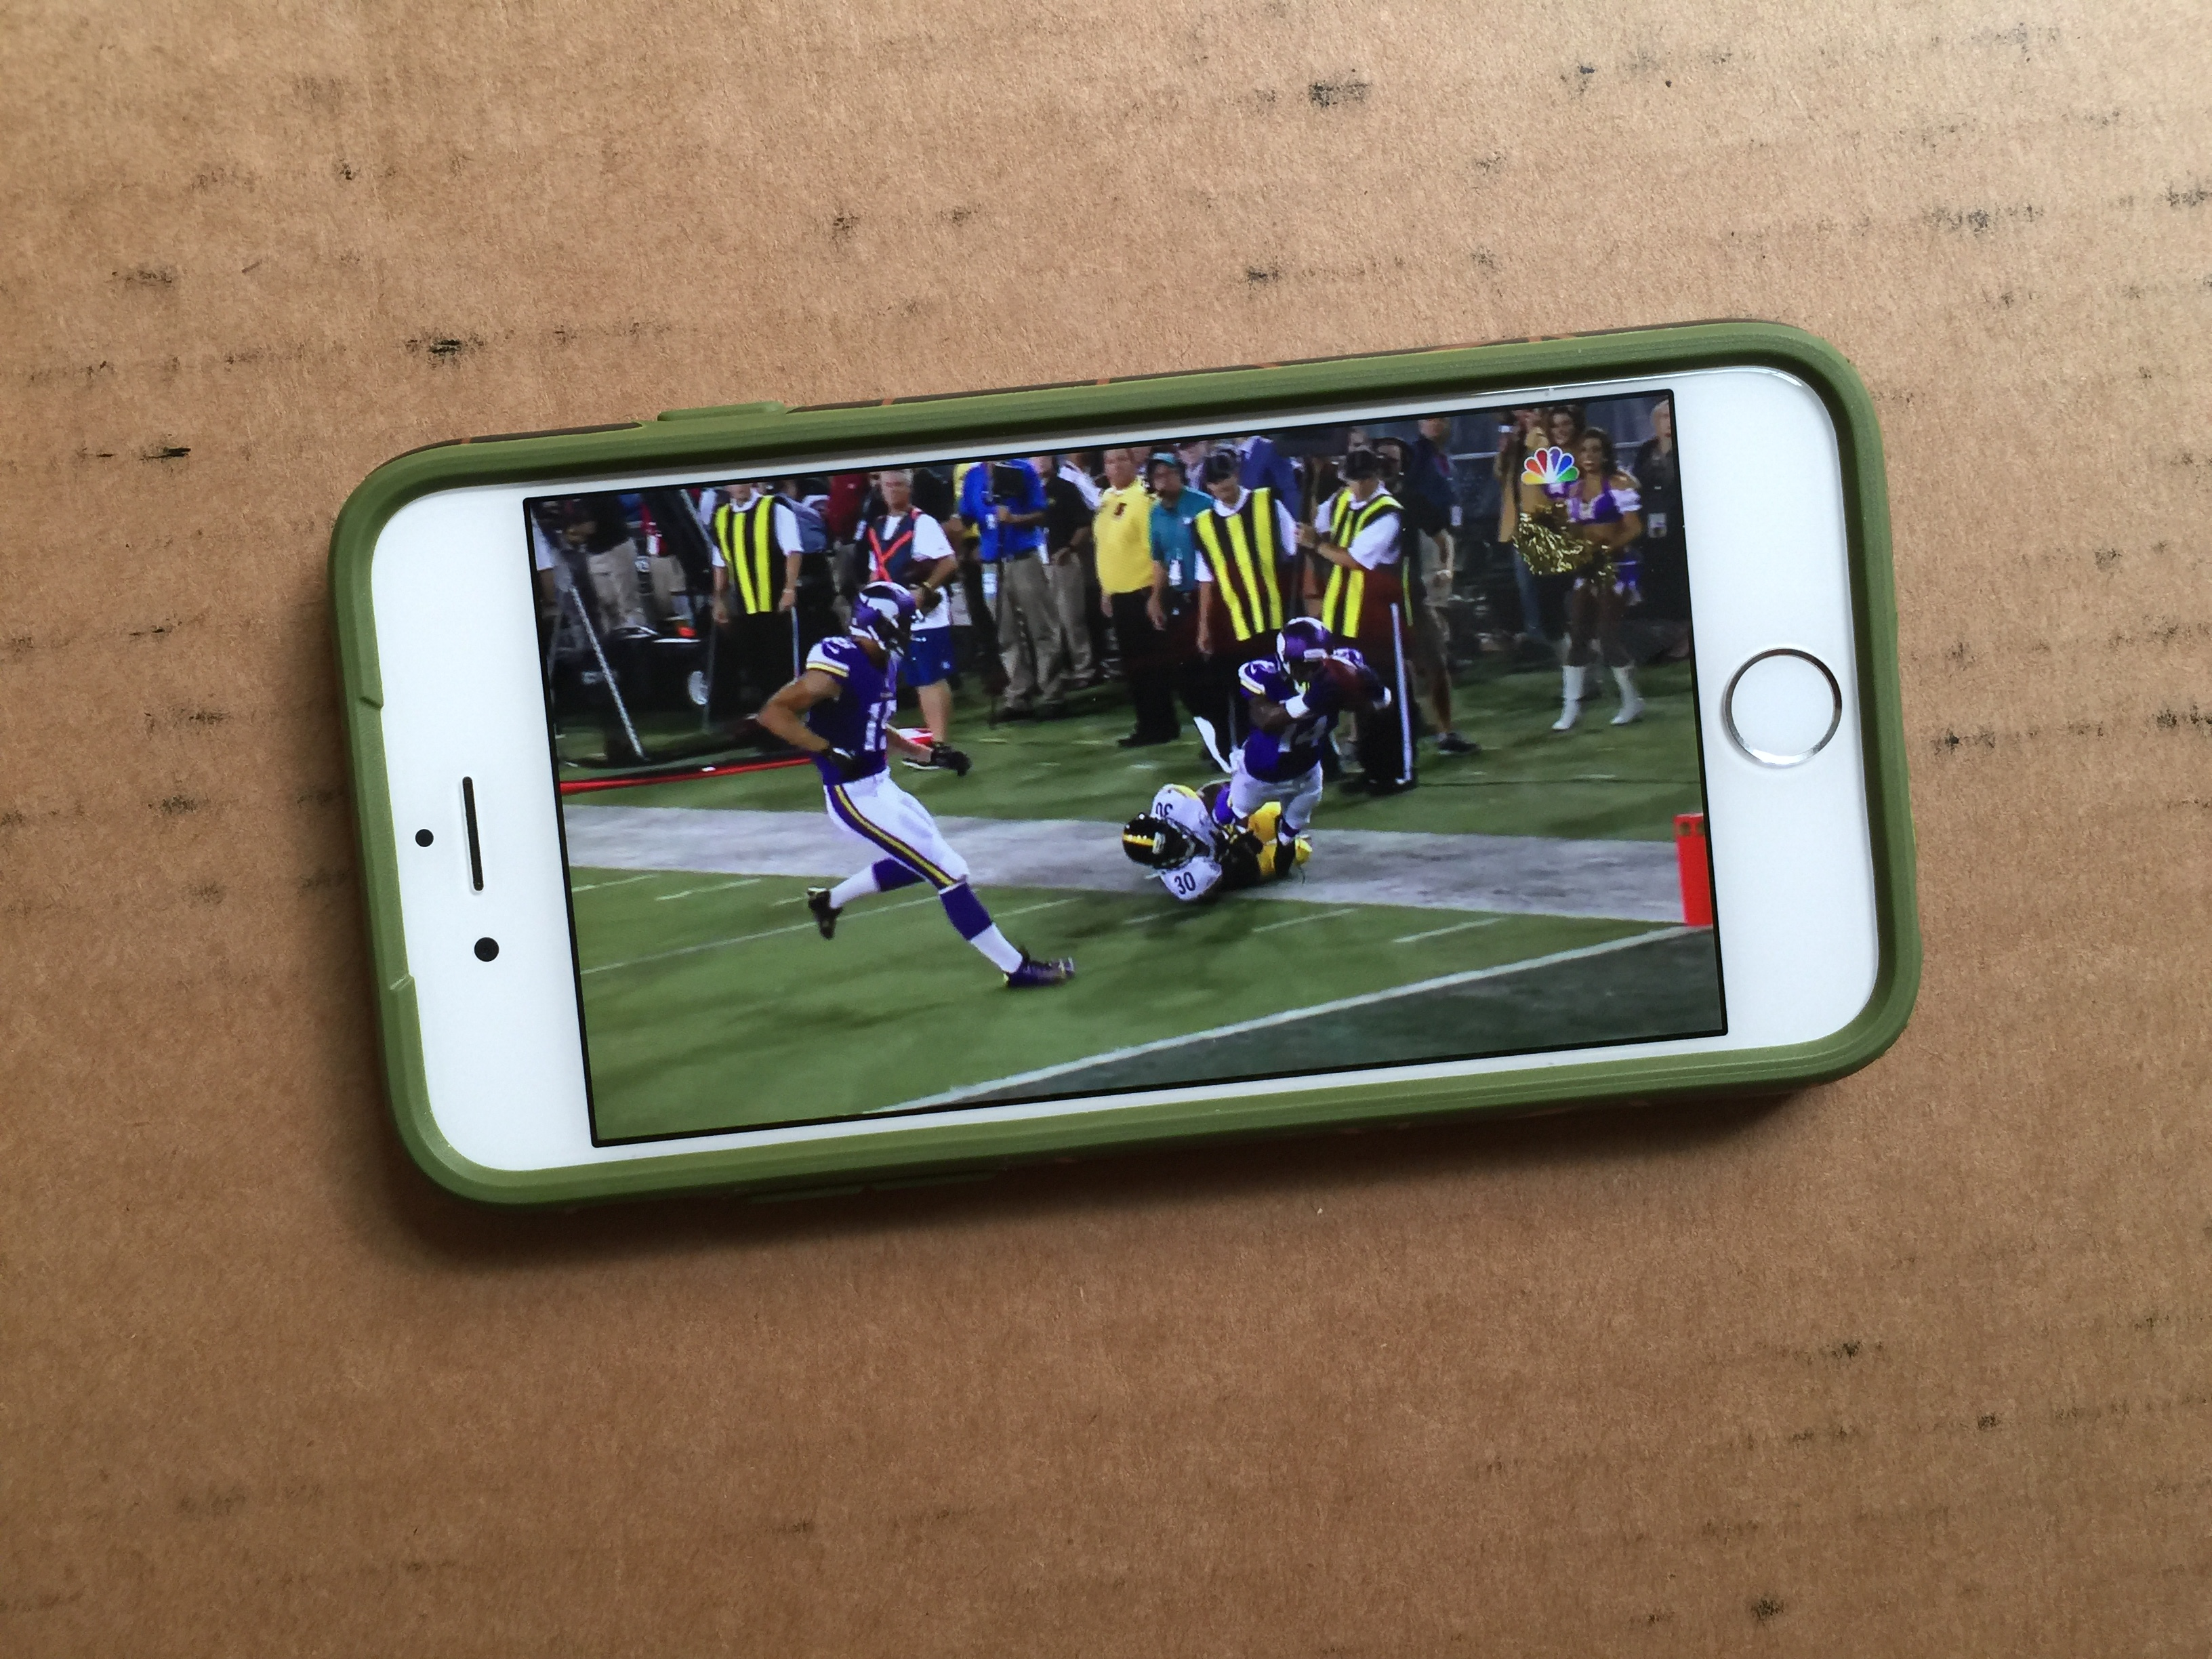 Watch the 2015 NFL Preseason live free if you are already a Verizon customer.